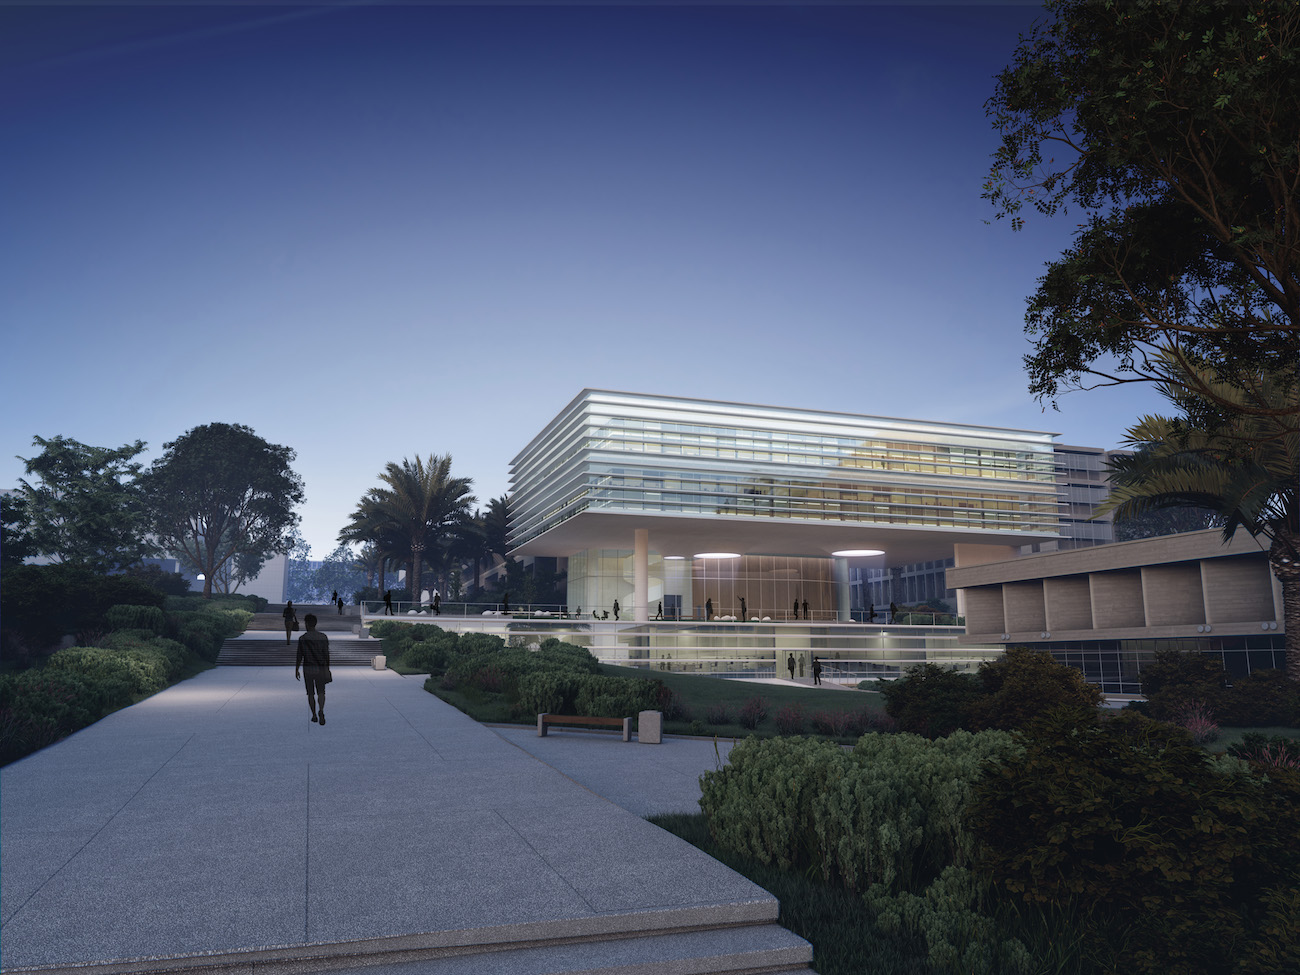 Renderings of the upcoming Lorry Lokey Management Building at Tel Aviv University, slated for completion in 2018.